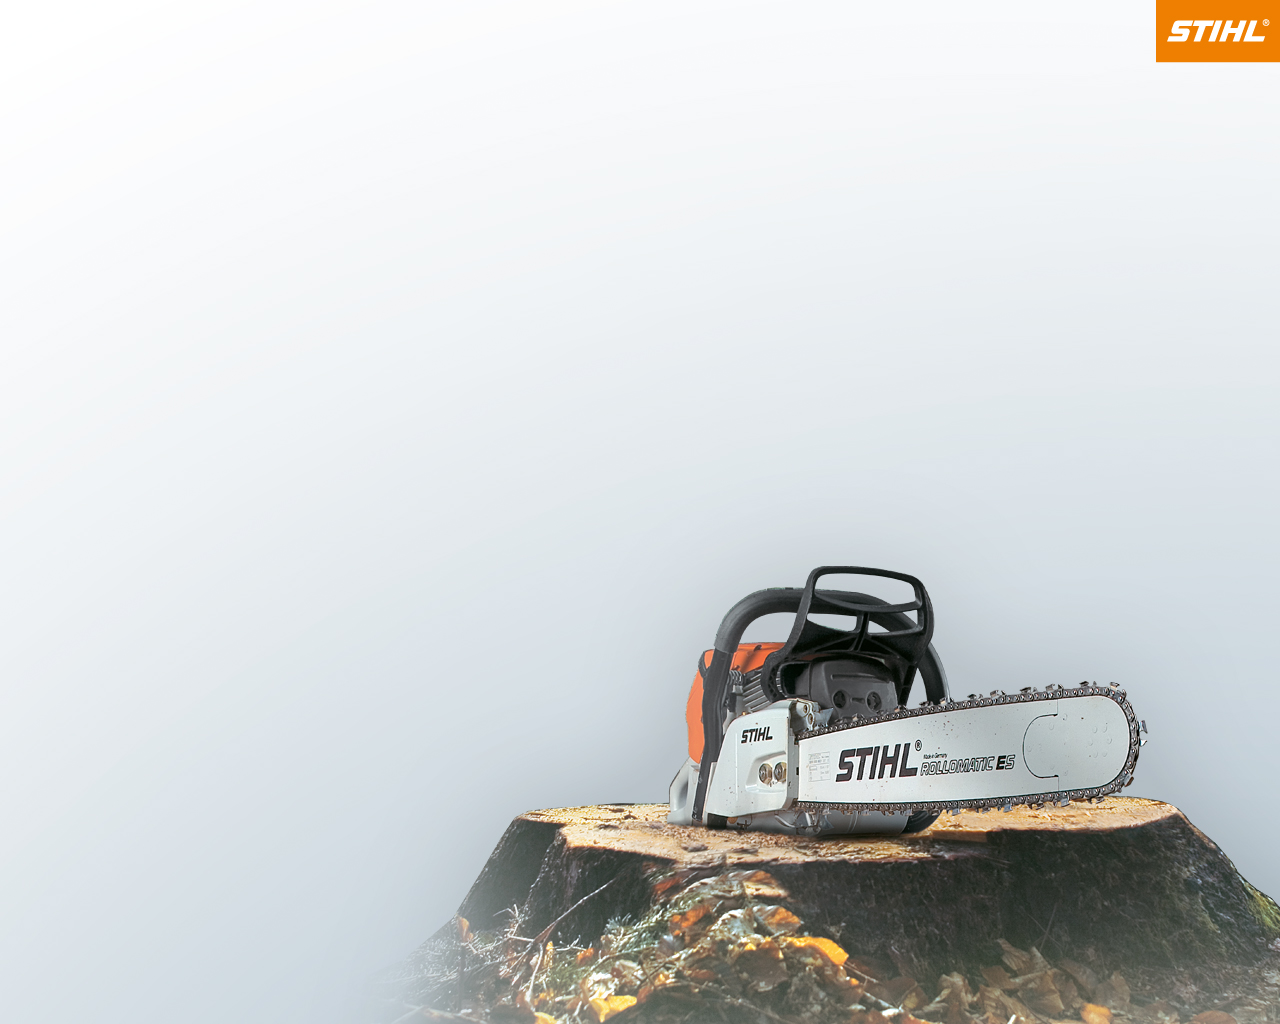 our wallpaper for more stihl on your screen stihl stihl